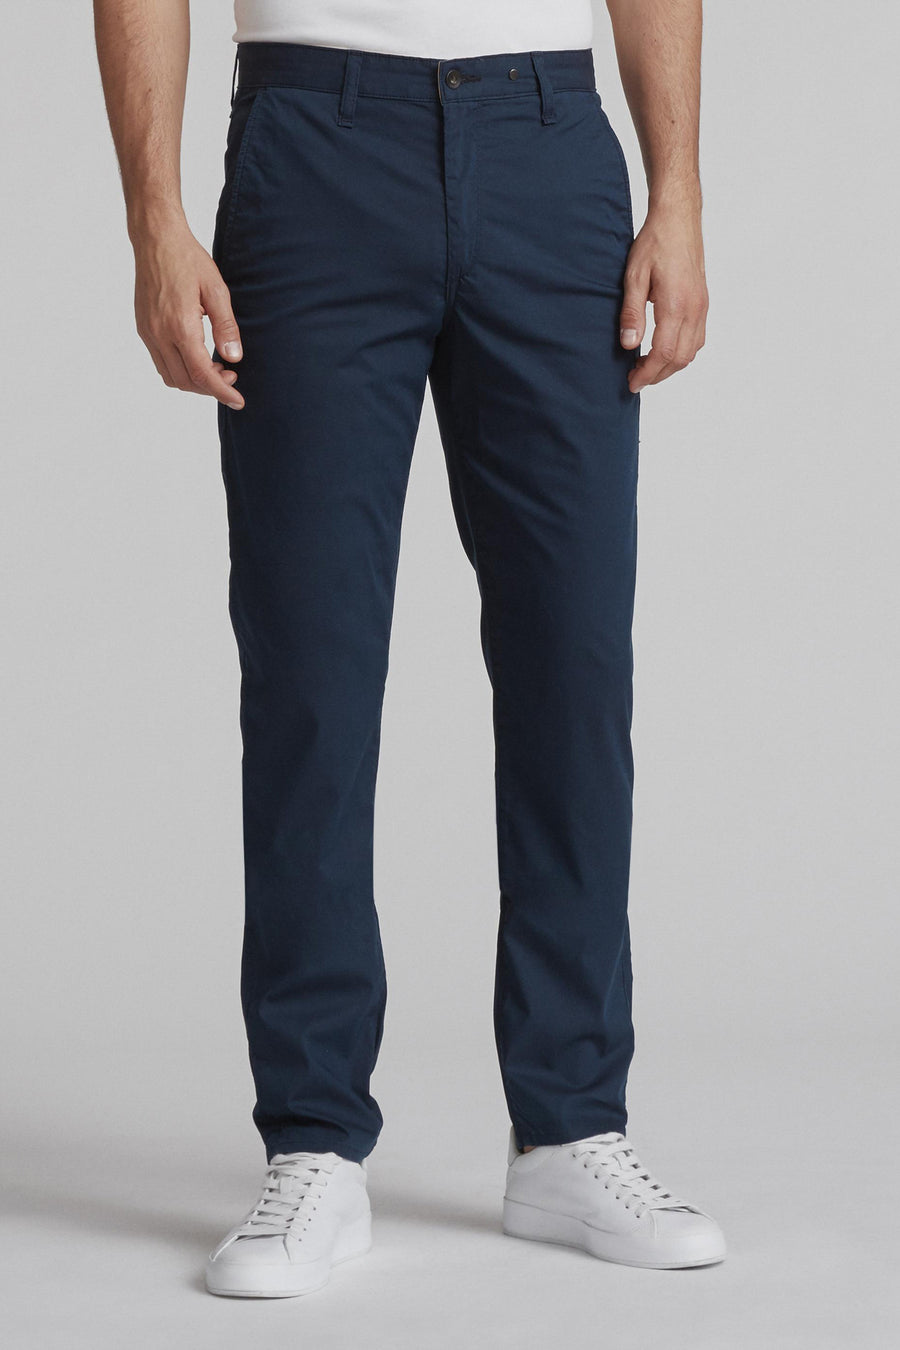 Flyweight Chino Fit 2 - Dark Navy - Pavilion